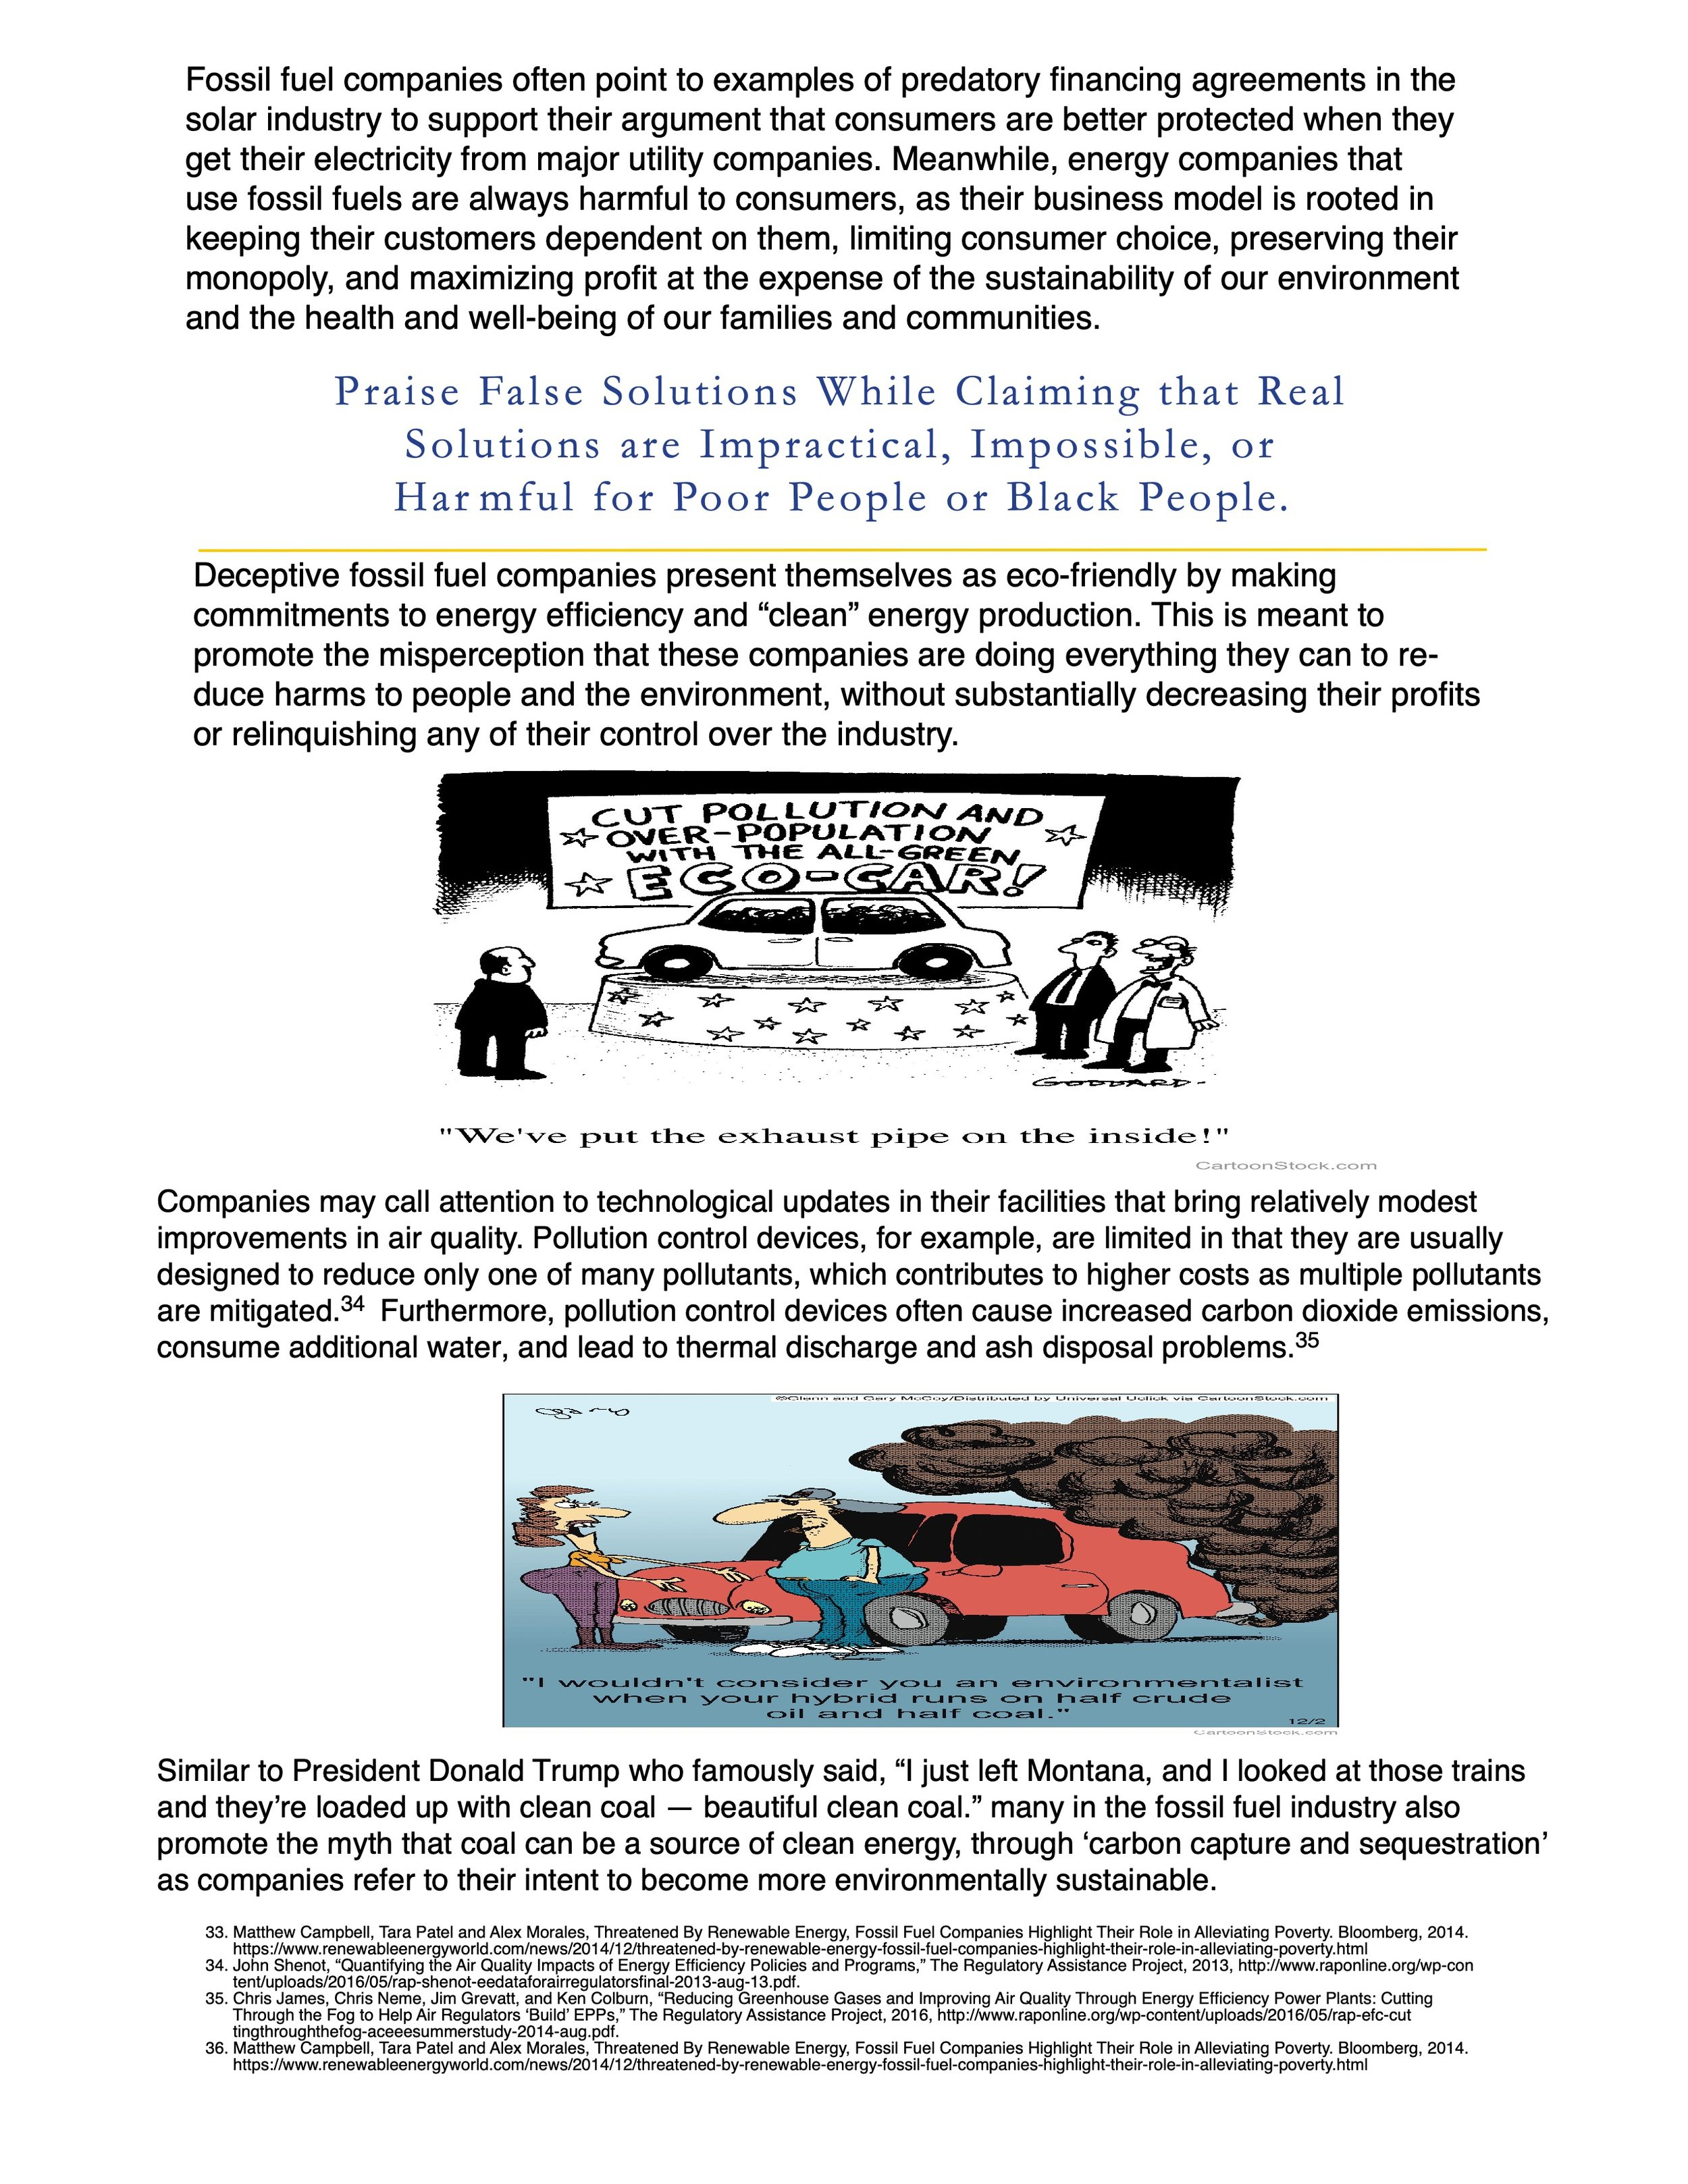 Fossil-Fueled-Foolery-An-Illustrated-Primer-on-the-Top-10-Manipulation-Tactics-of-the-Fossil-Fuel-Industry 14.jpeg